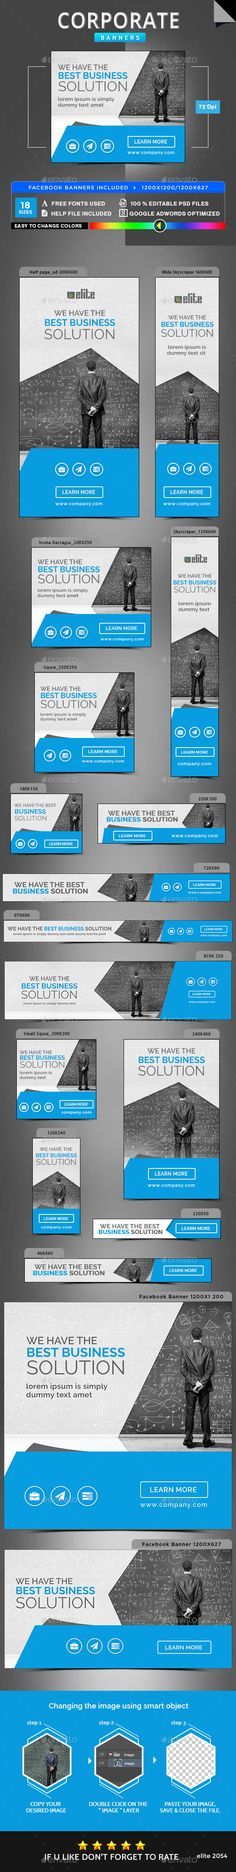 Corporate Web Banners Template PSD #ads